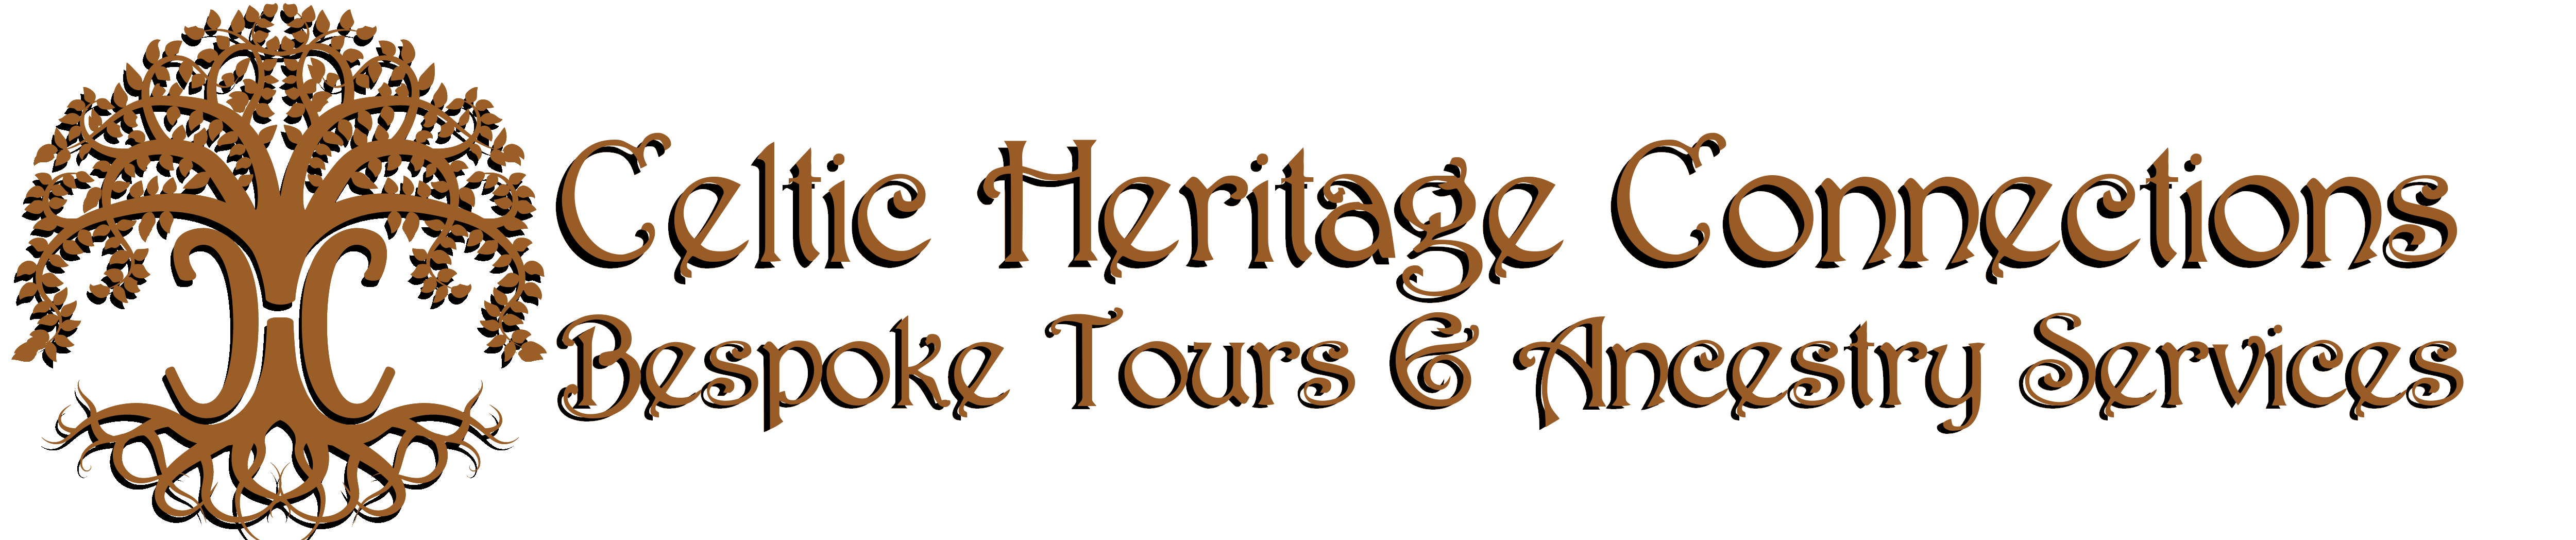 Celtic Heritage Connections